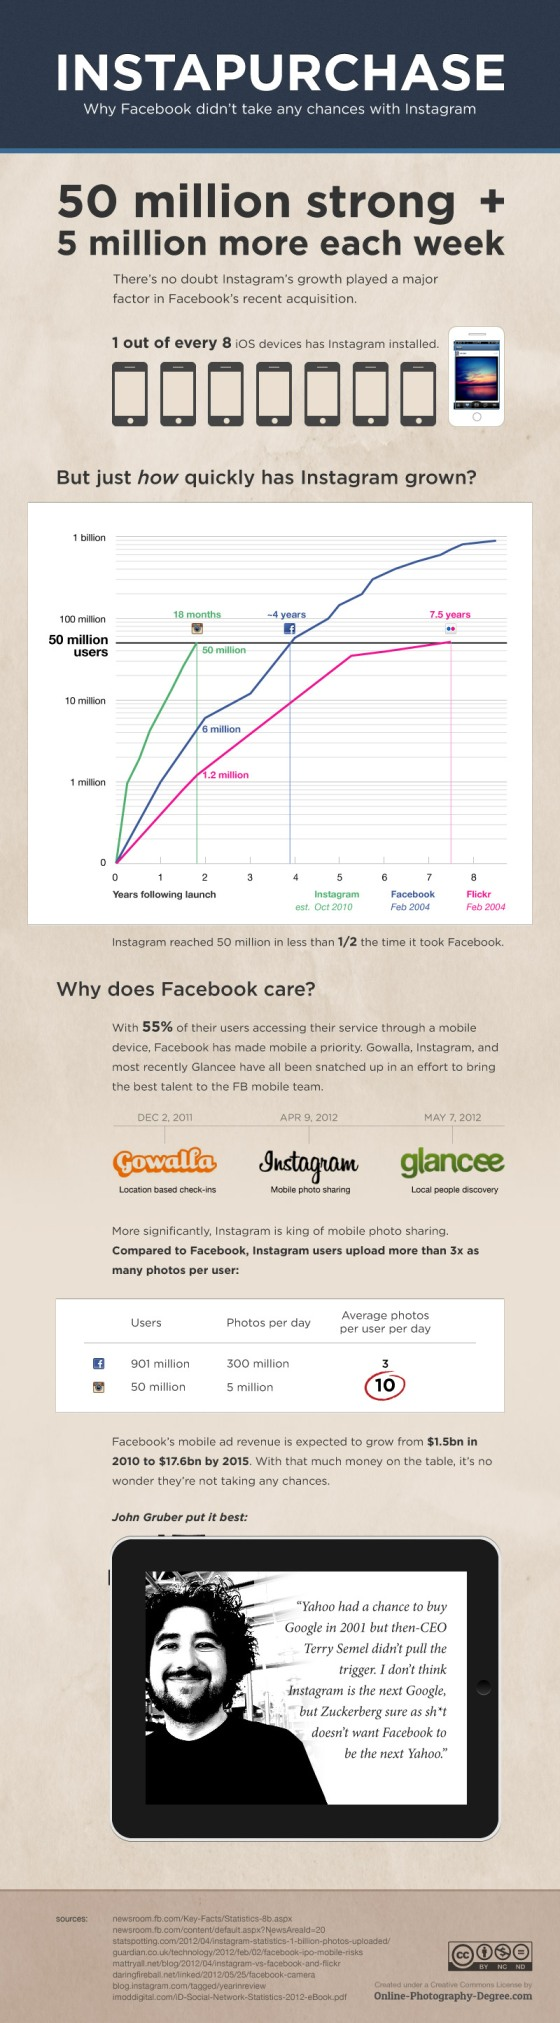 Why Facebook didn't take any chances with Instagram [infographic]